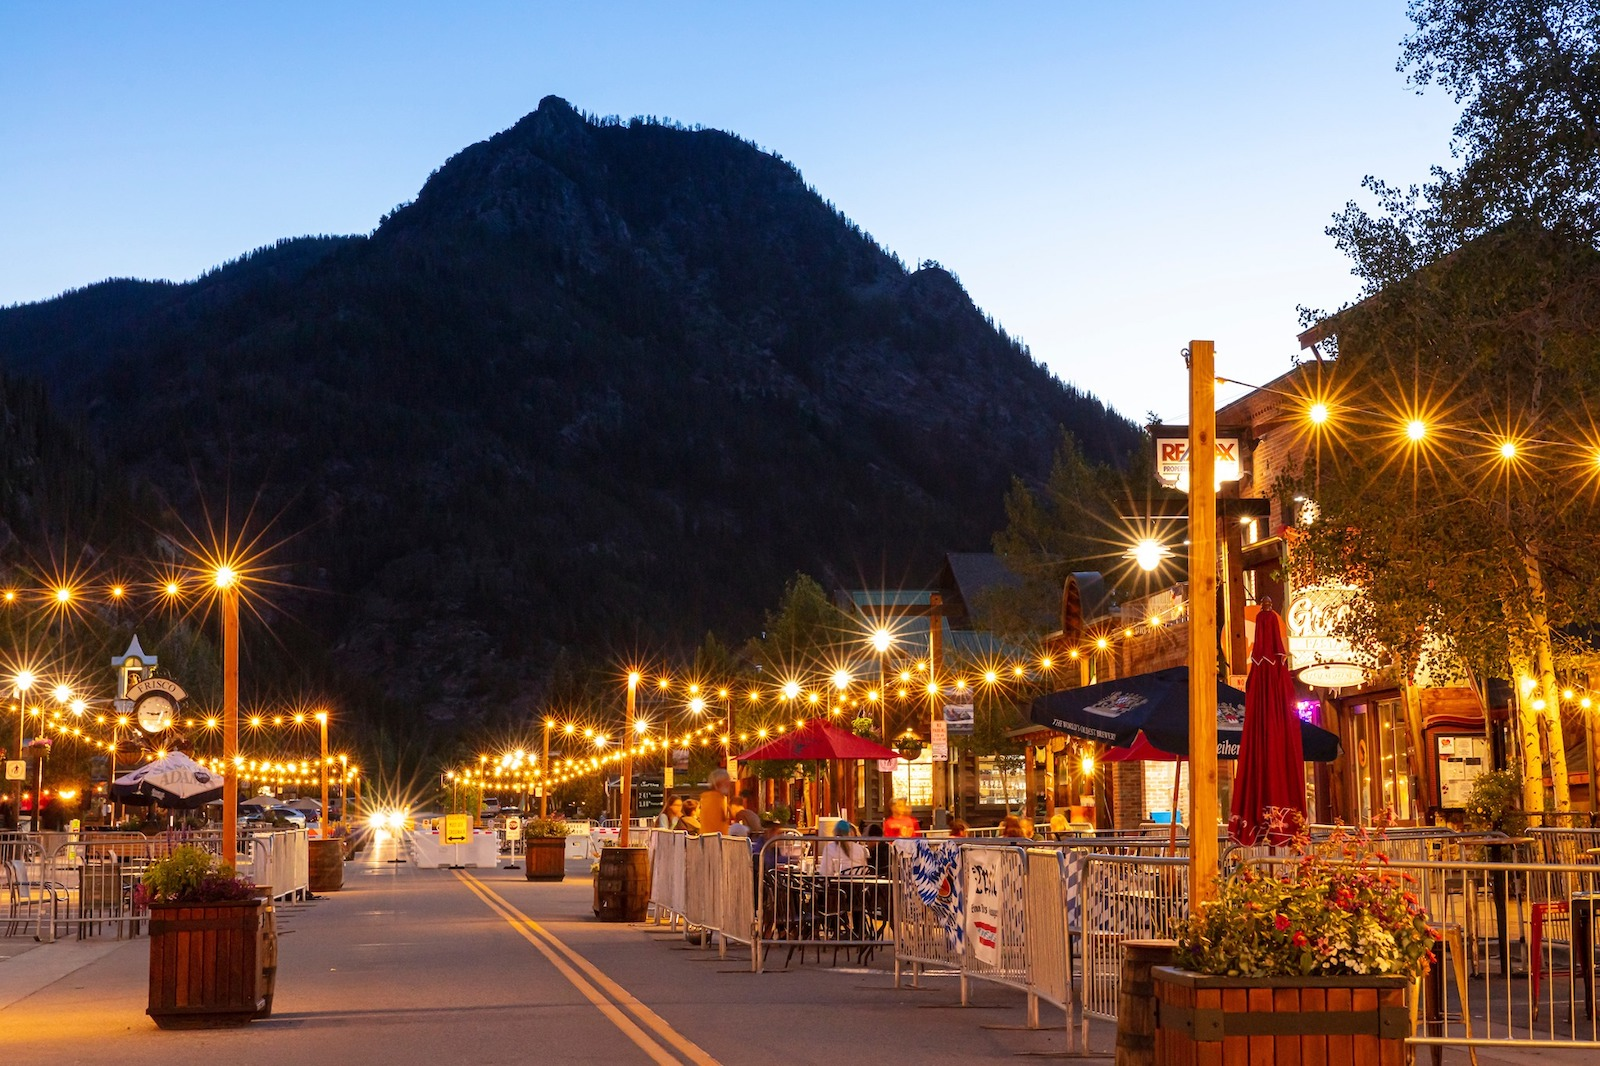 Image of Frisco, Colorado at sunset